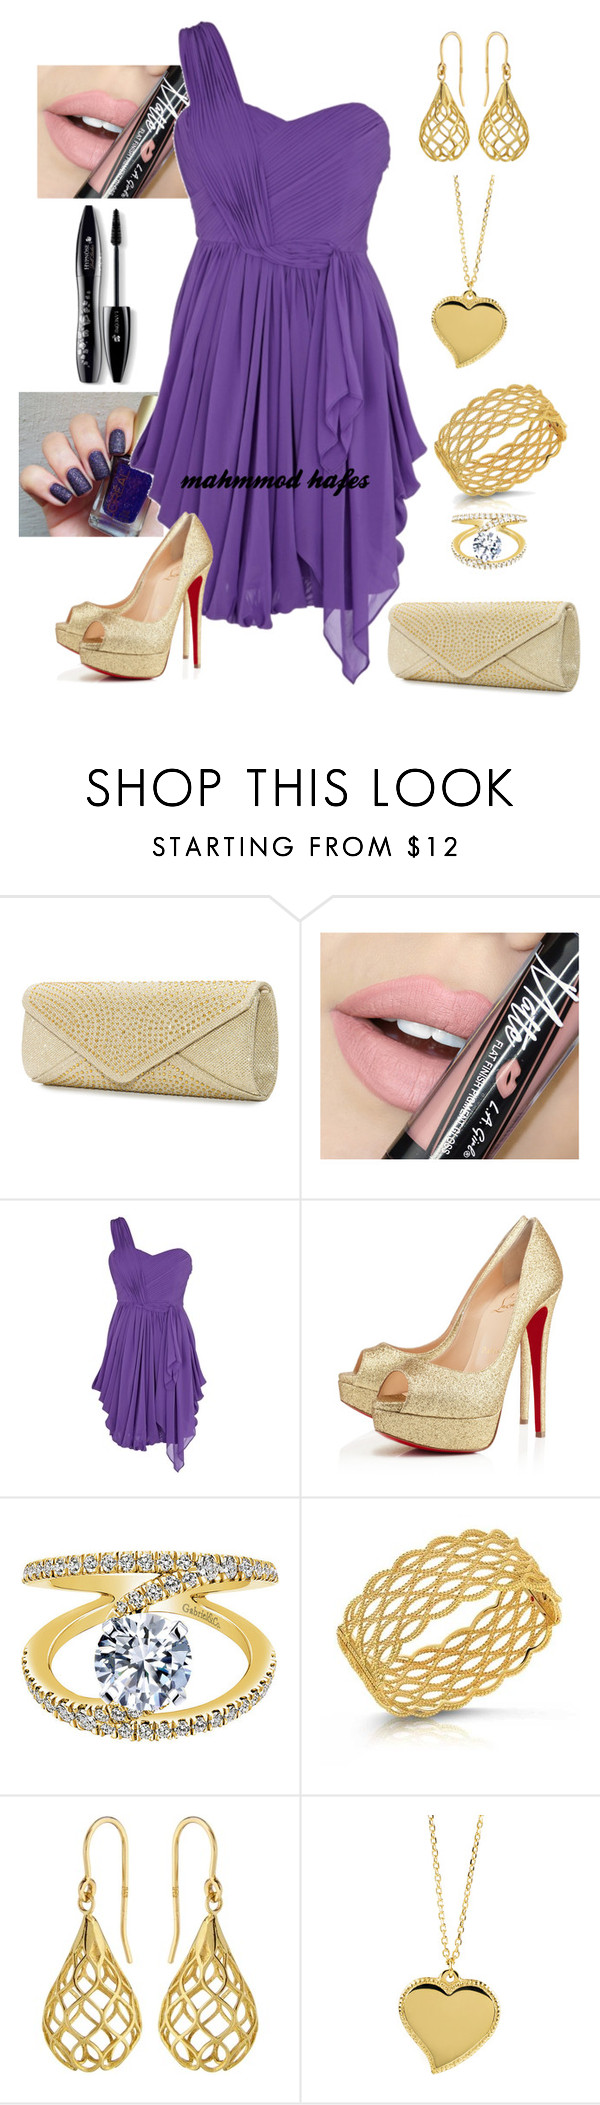 """""""mahmmod"""" by mahmmodhafes ❤ liked on Polyvore featuring Mascara, Fiebiger, Coast, Roberto Coin, Elements, West Coast Jewelry, Lancôme, women's clothing, women and female"""